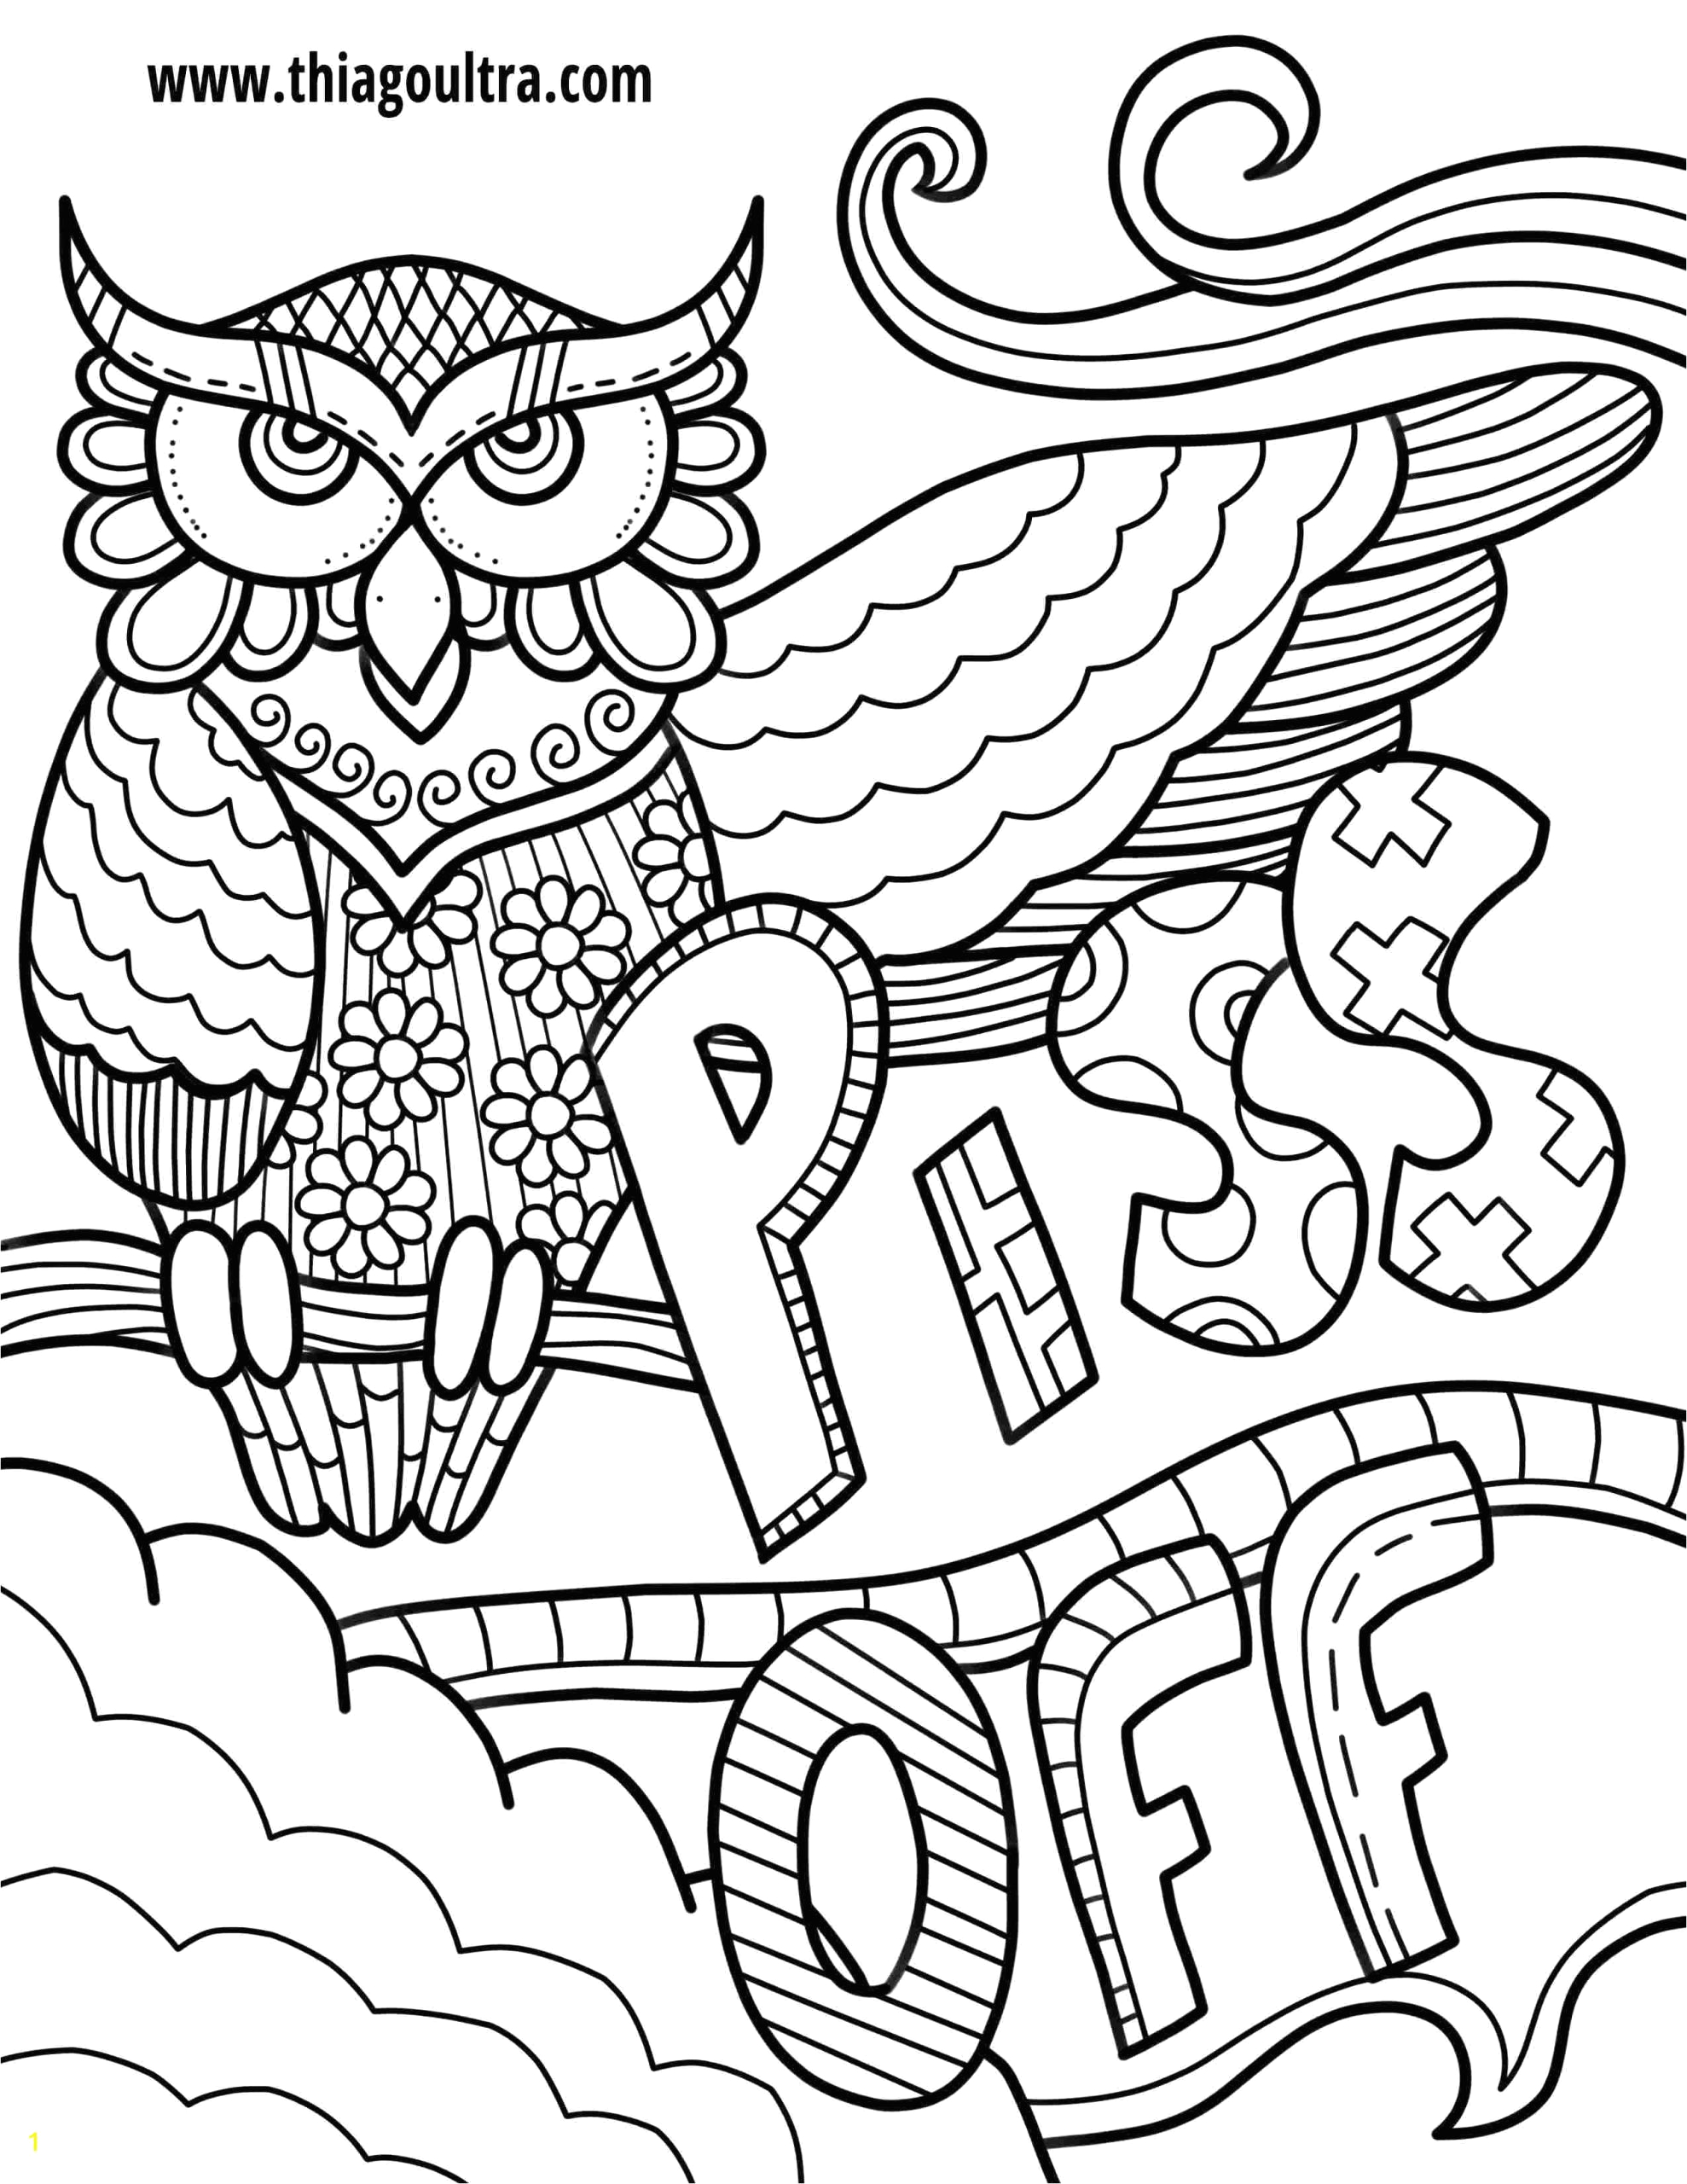 Free Printable Coloring Pages for Adults Only Swear Words Free Printable Coloring Pages for Adults Ly Swear Words